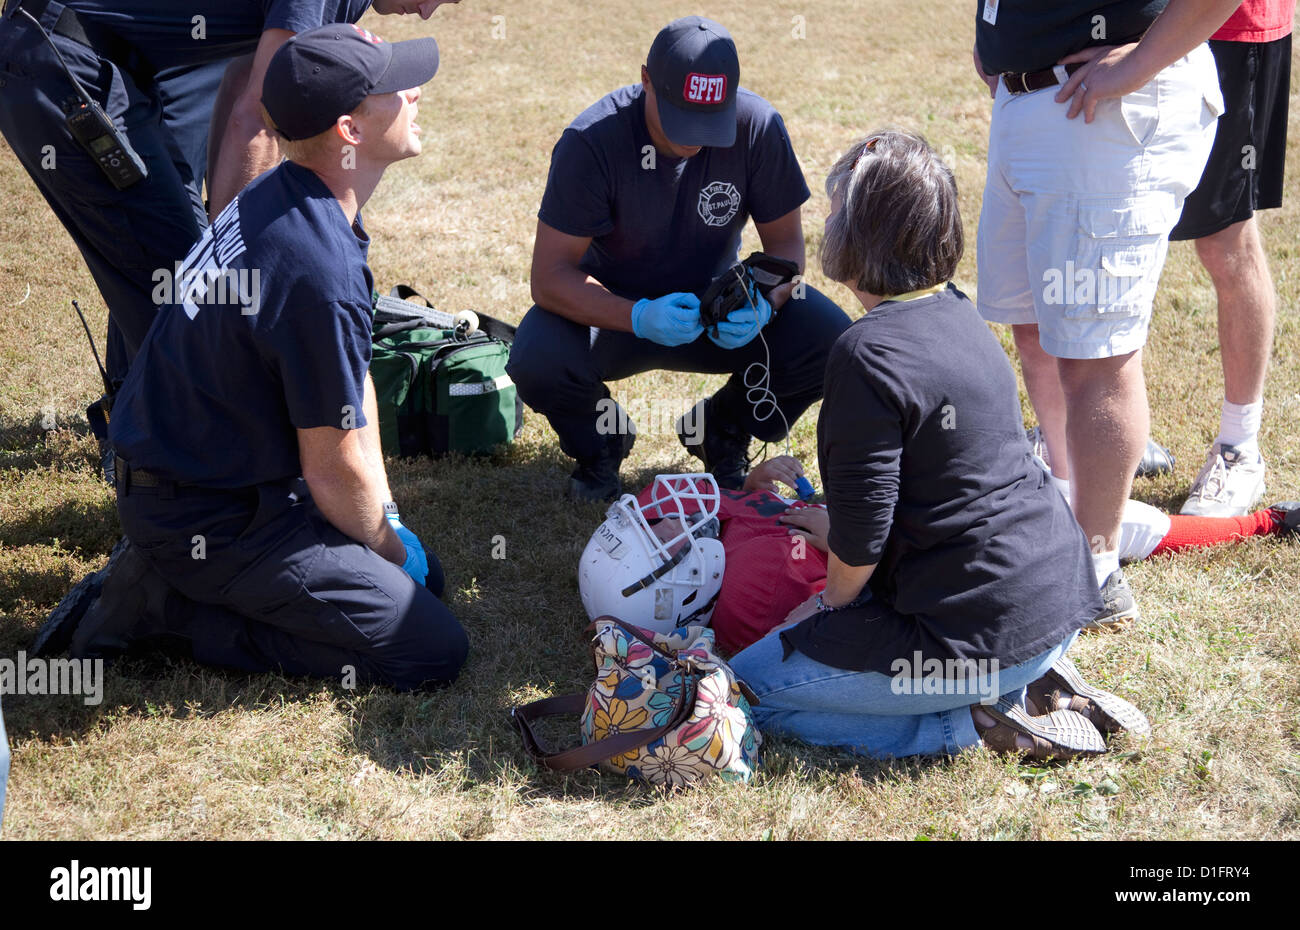 Nurse and paramedics attending to injured football player. Conway Height's Park St Paul Minnesota MN USA - Stock Image